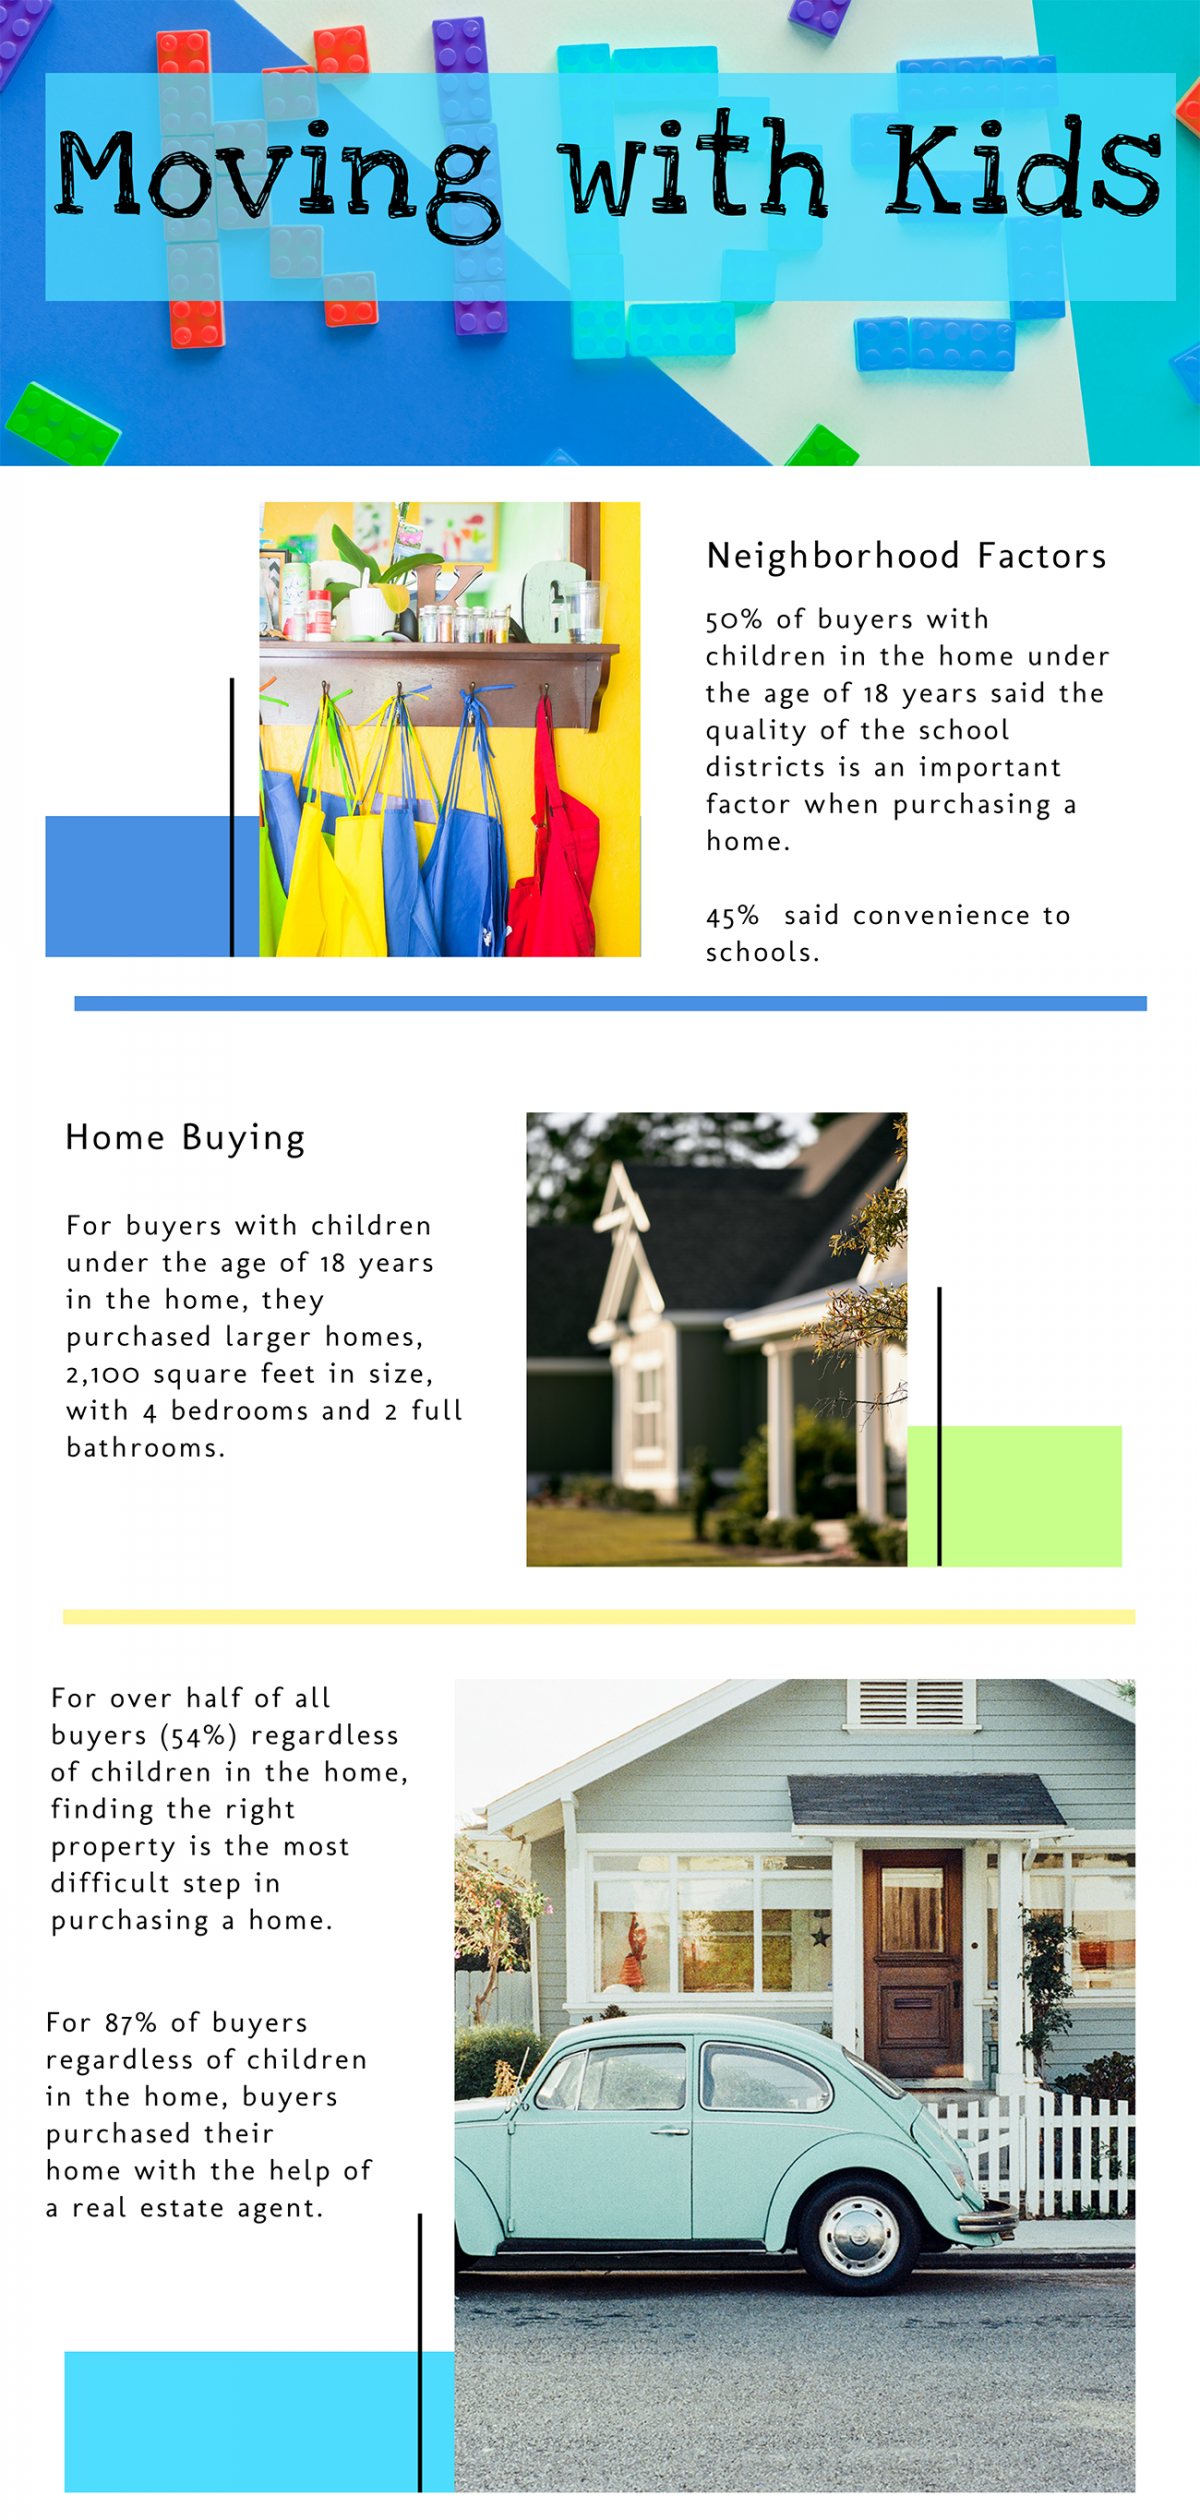 Cropped version of the 2018 Moving With Kids infographic